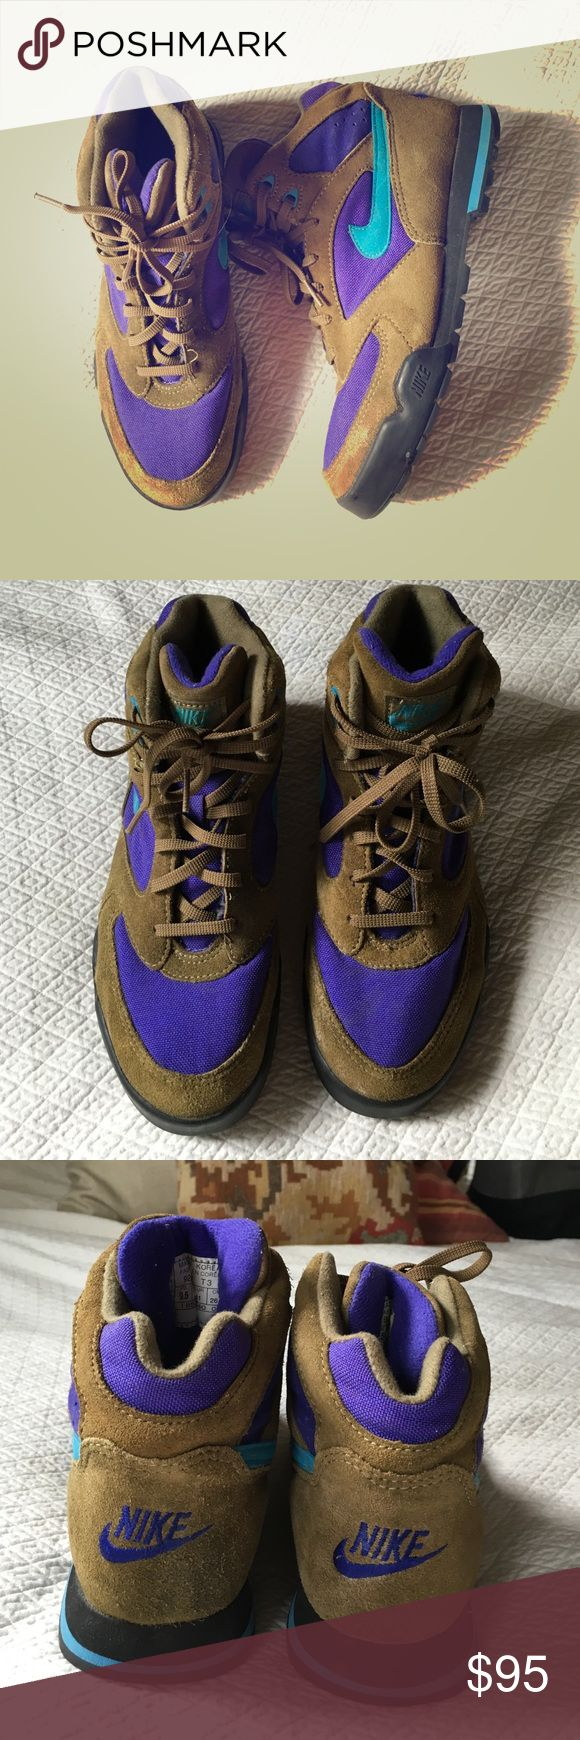 Vintage Nike hiking boots Awesome old school Nike hiking boots. In mint  condition. Very